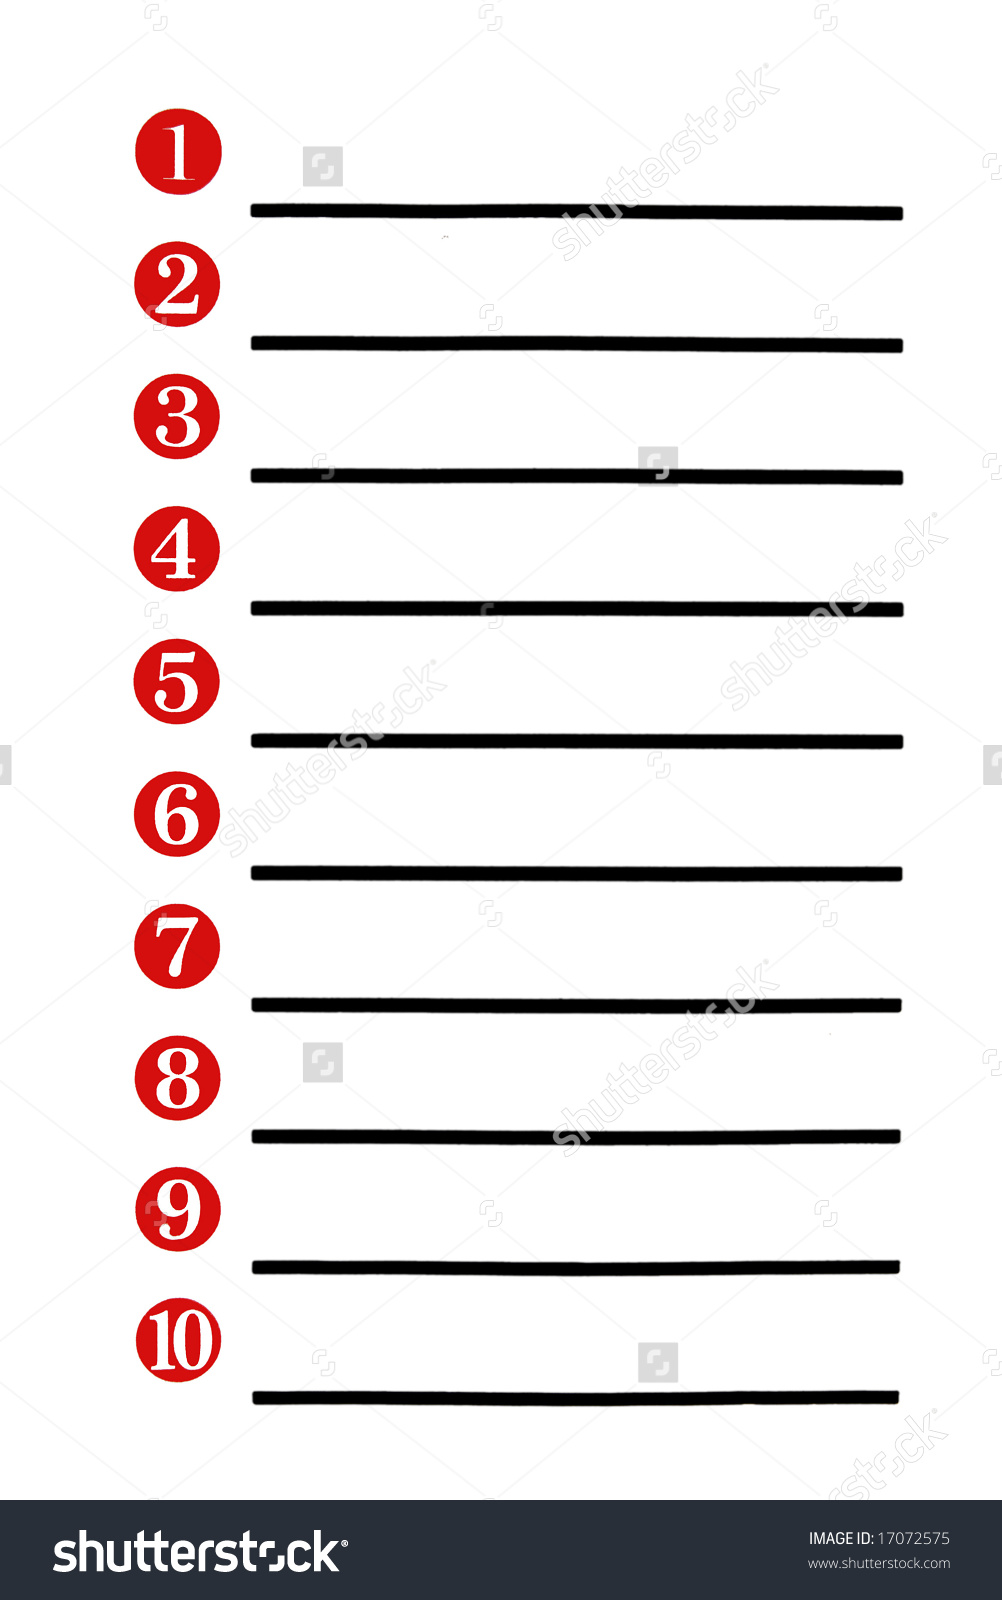 Numbered List Clipart.